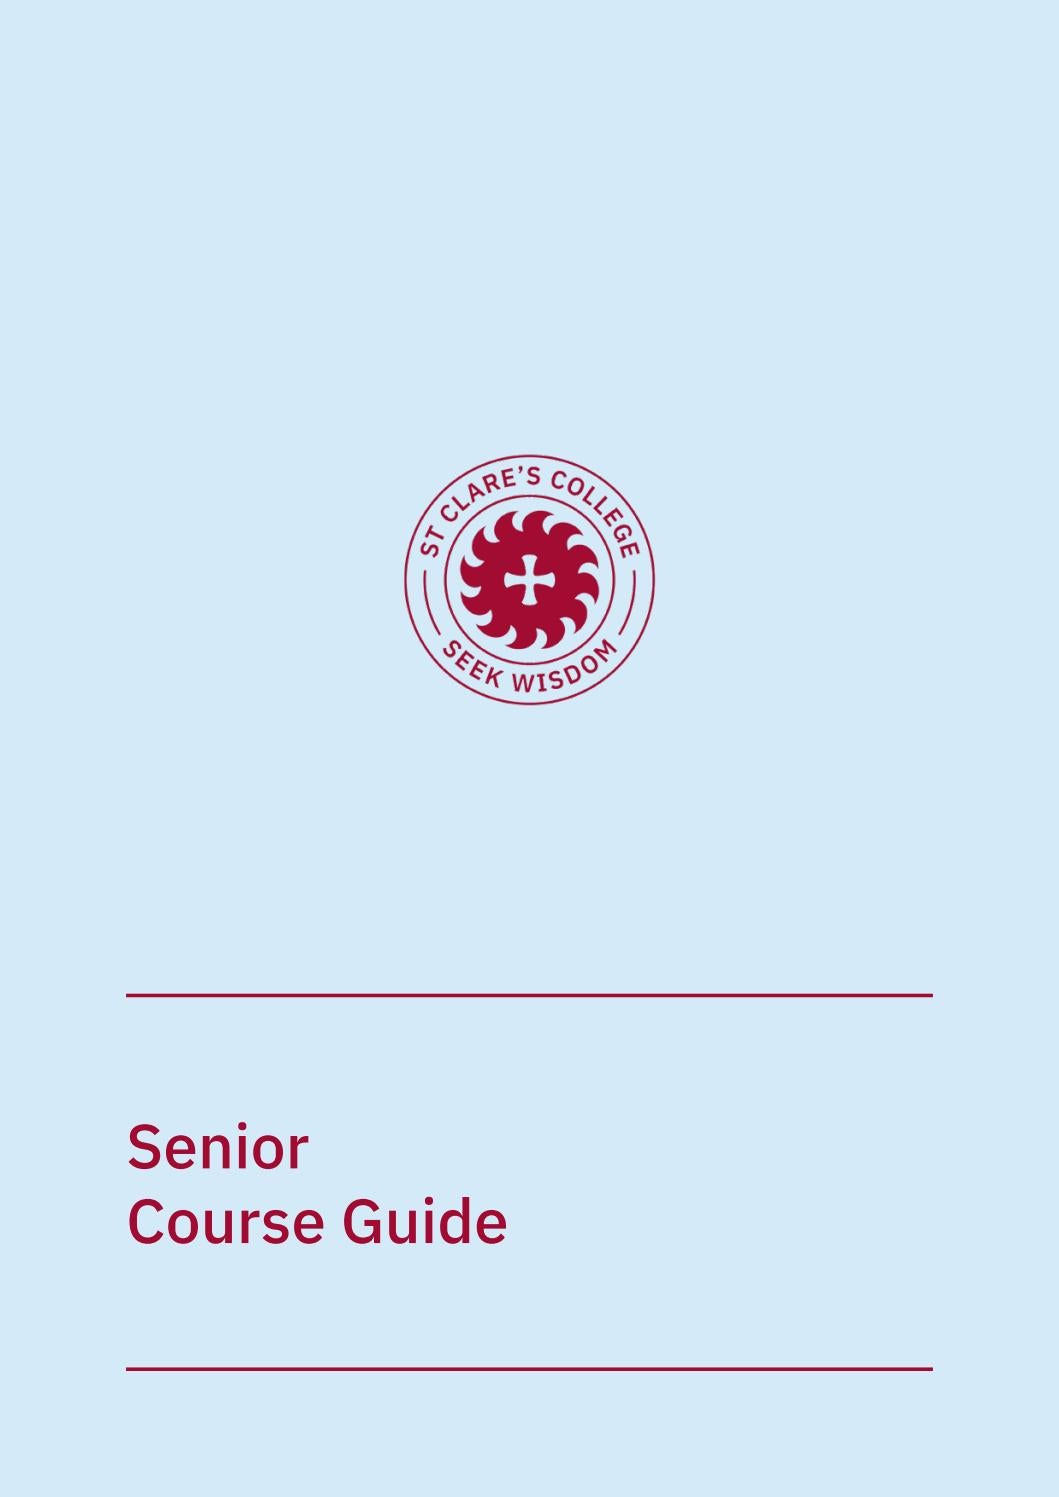 Download Senior Course Guide